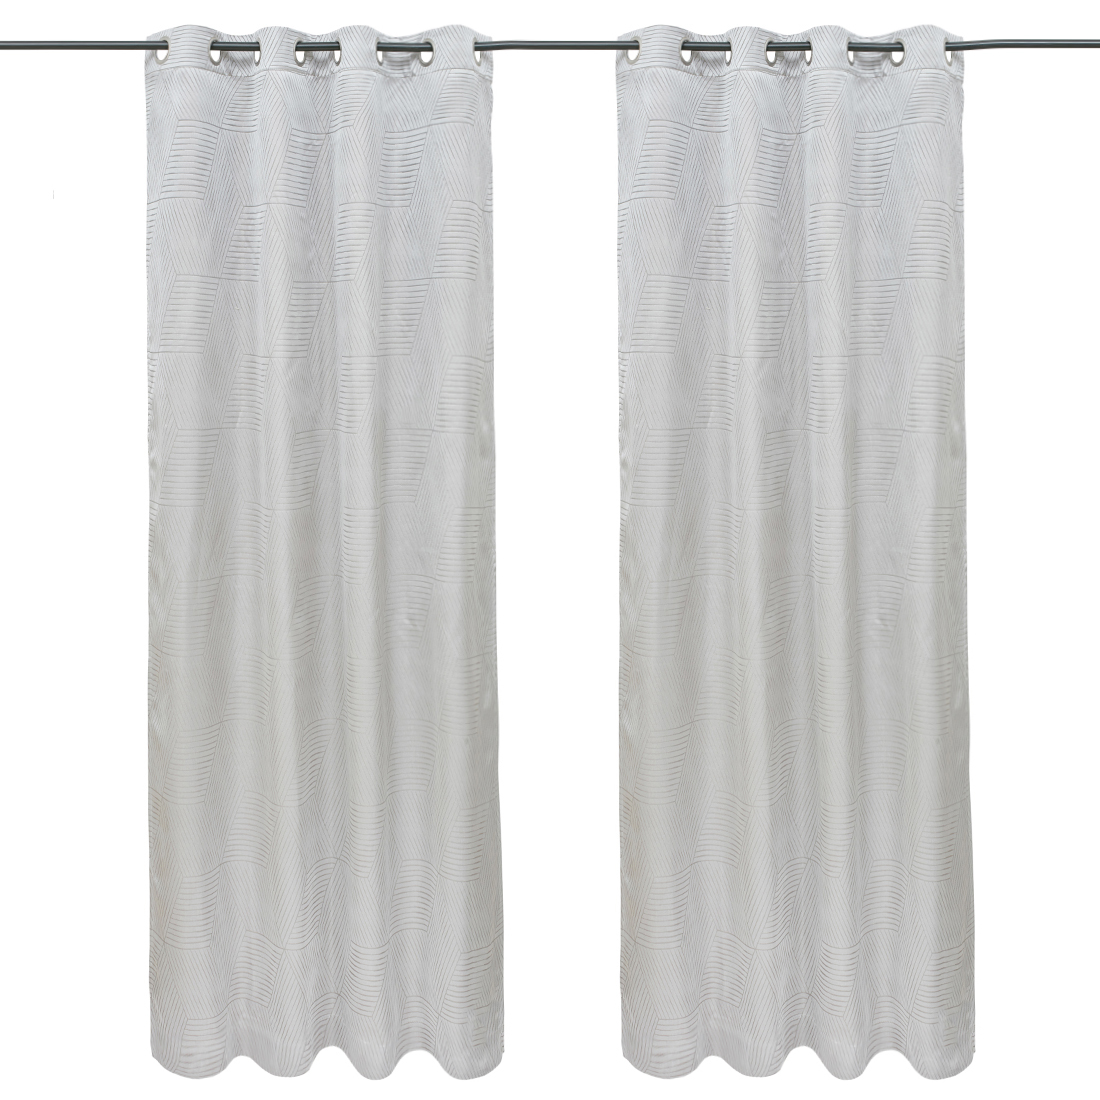 Emilia Jacquard Set of 2 Polyester Door Curtains in White Colour by Living Essence